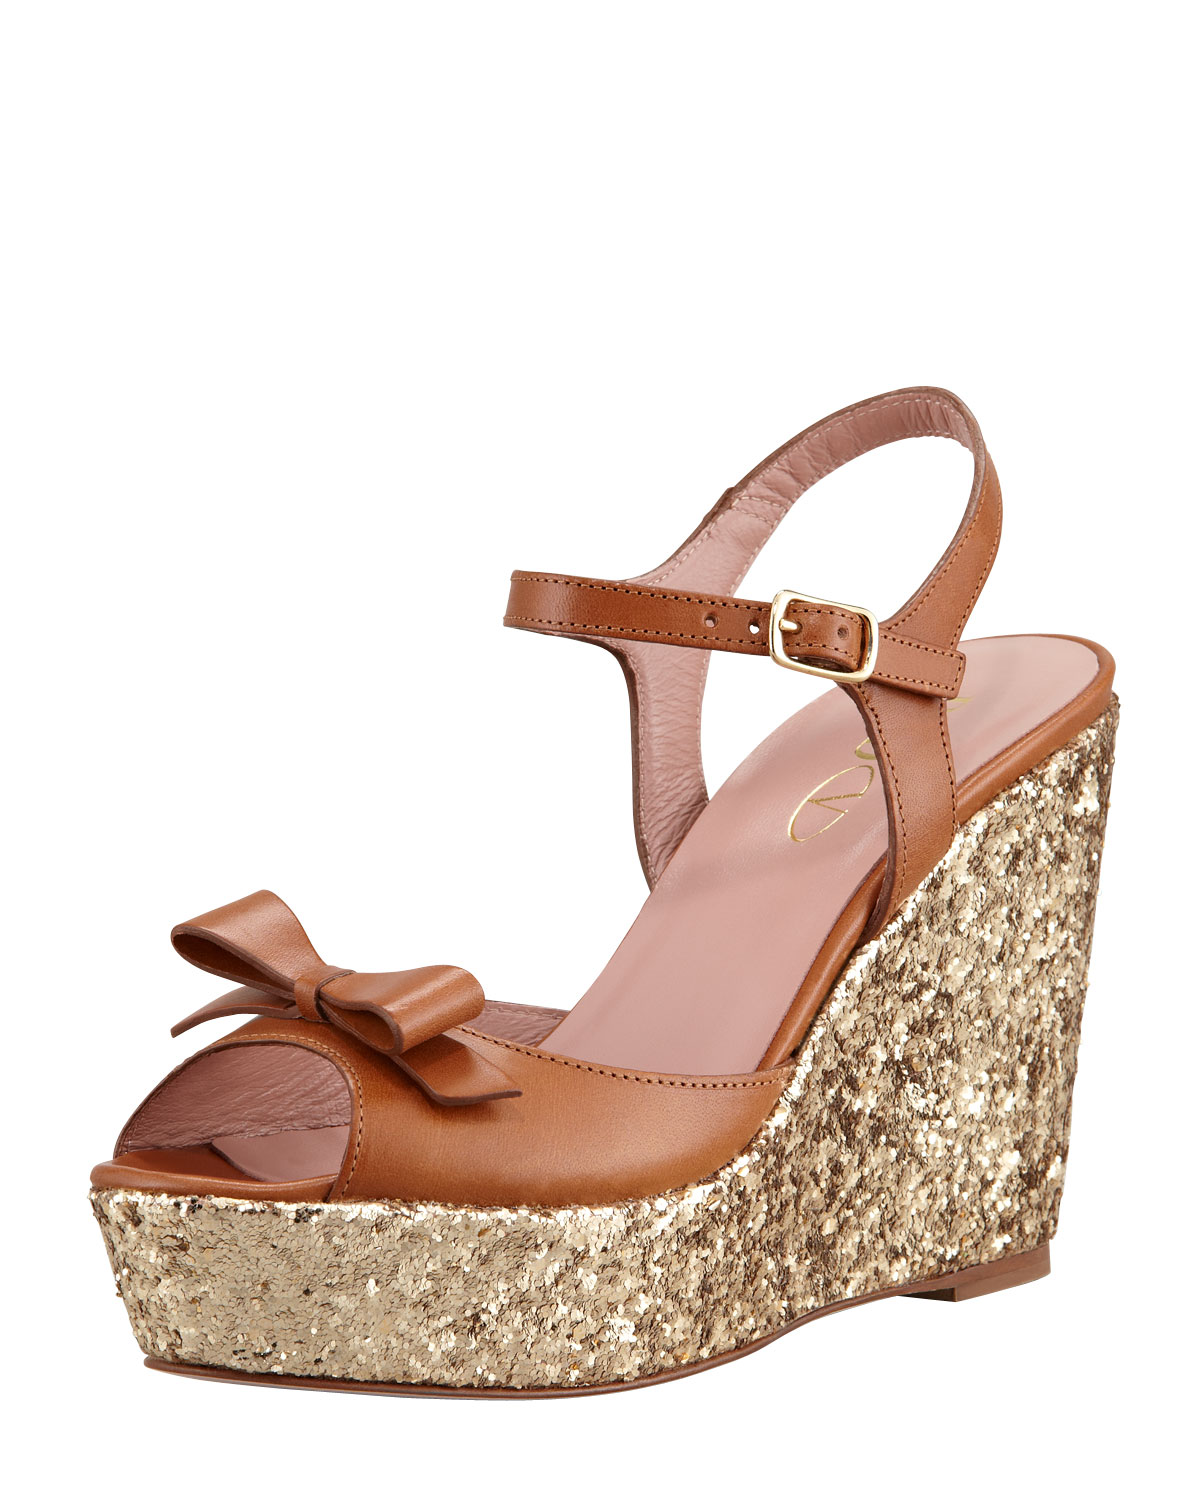 fc6f6d8c8ddb RED Valentino Leather Bow and Glitter Wedge Sandal in Metallic - Lyst